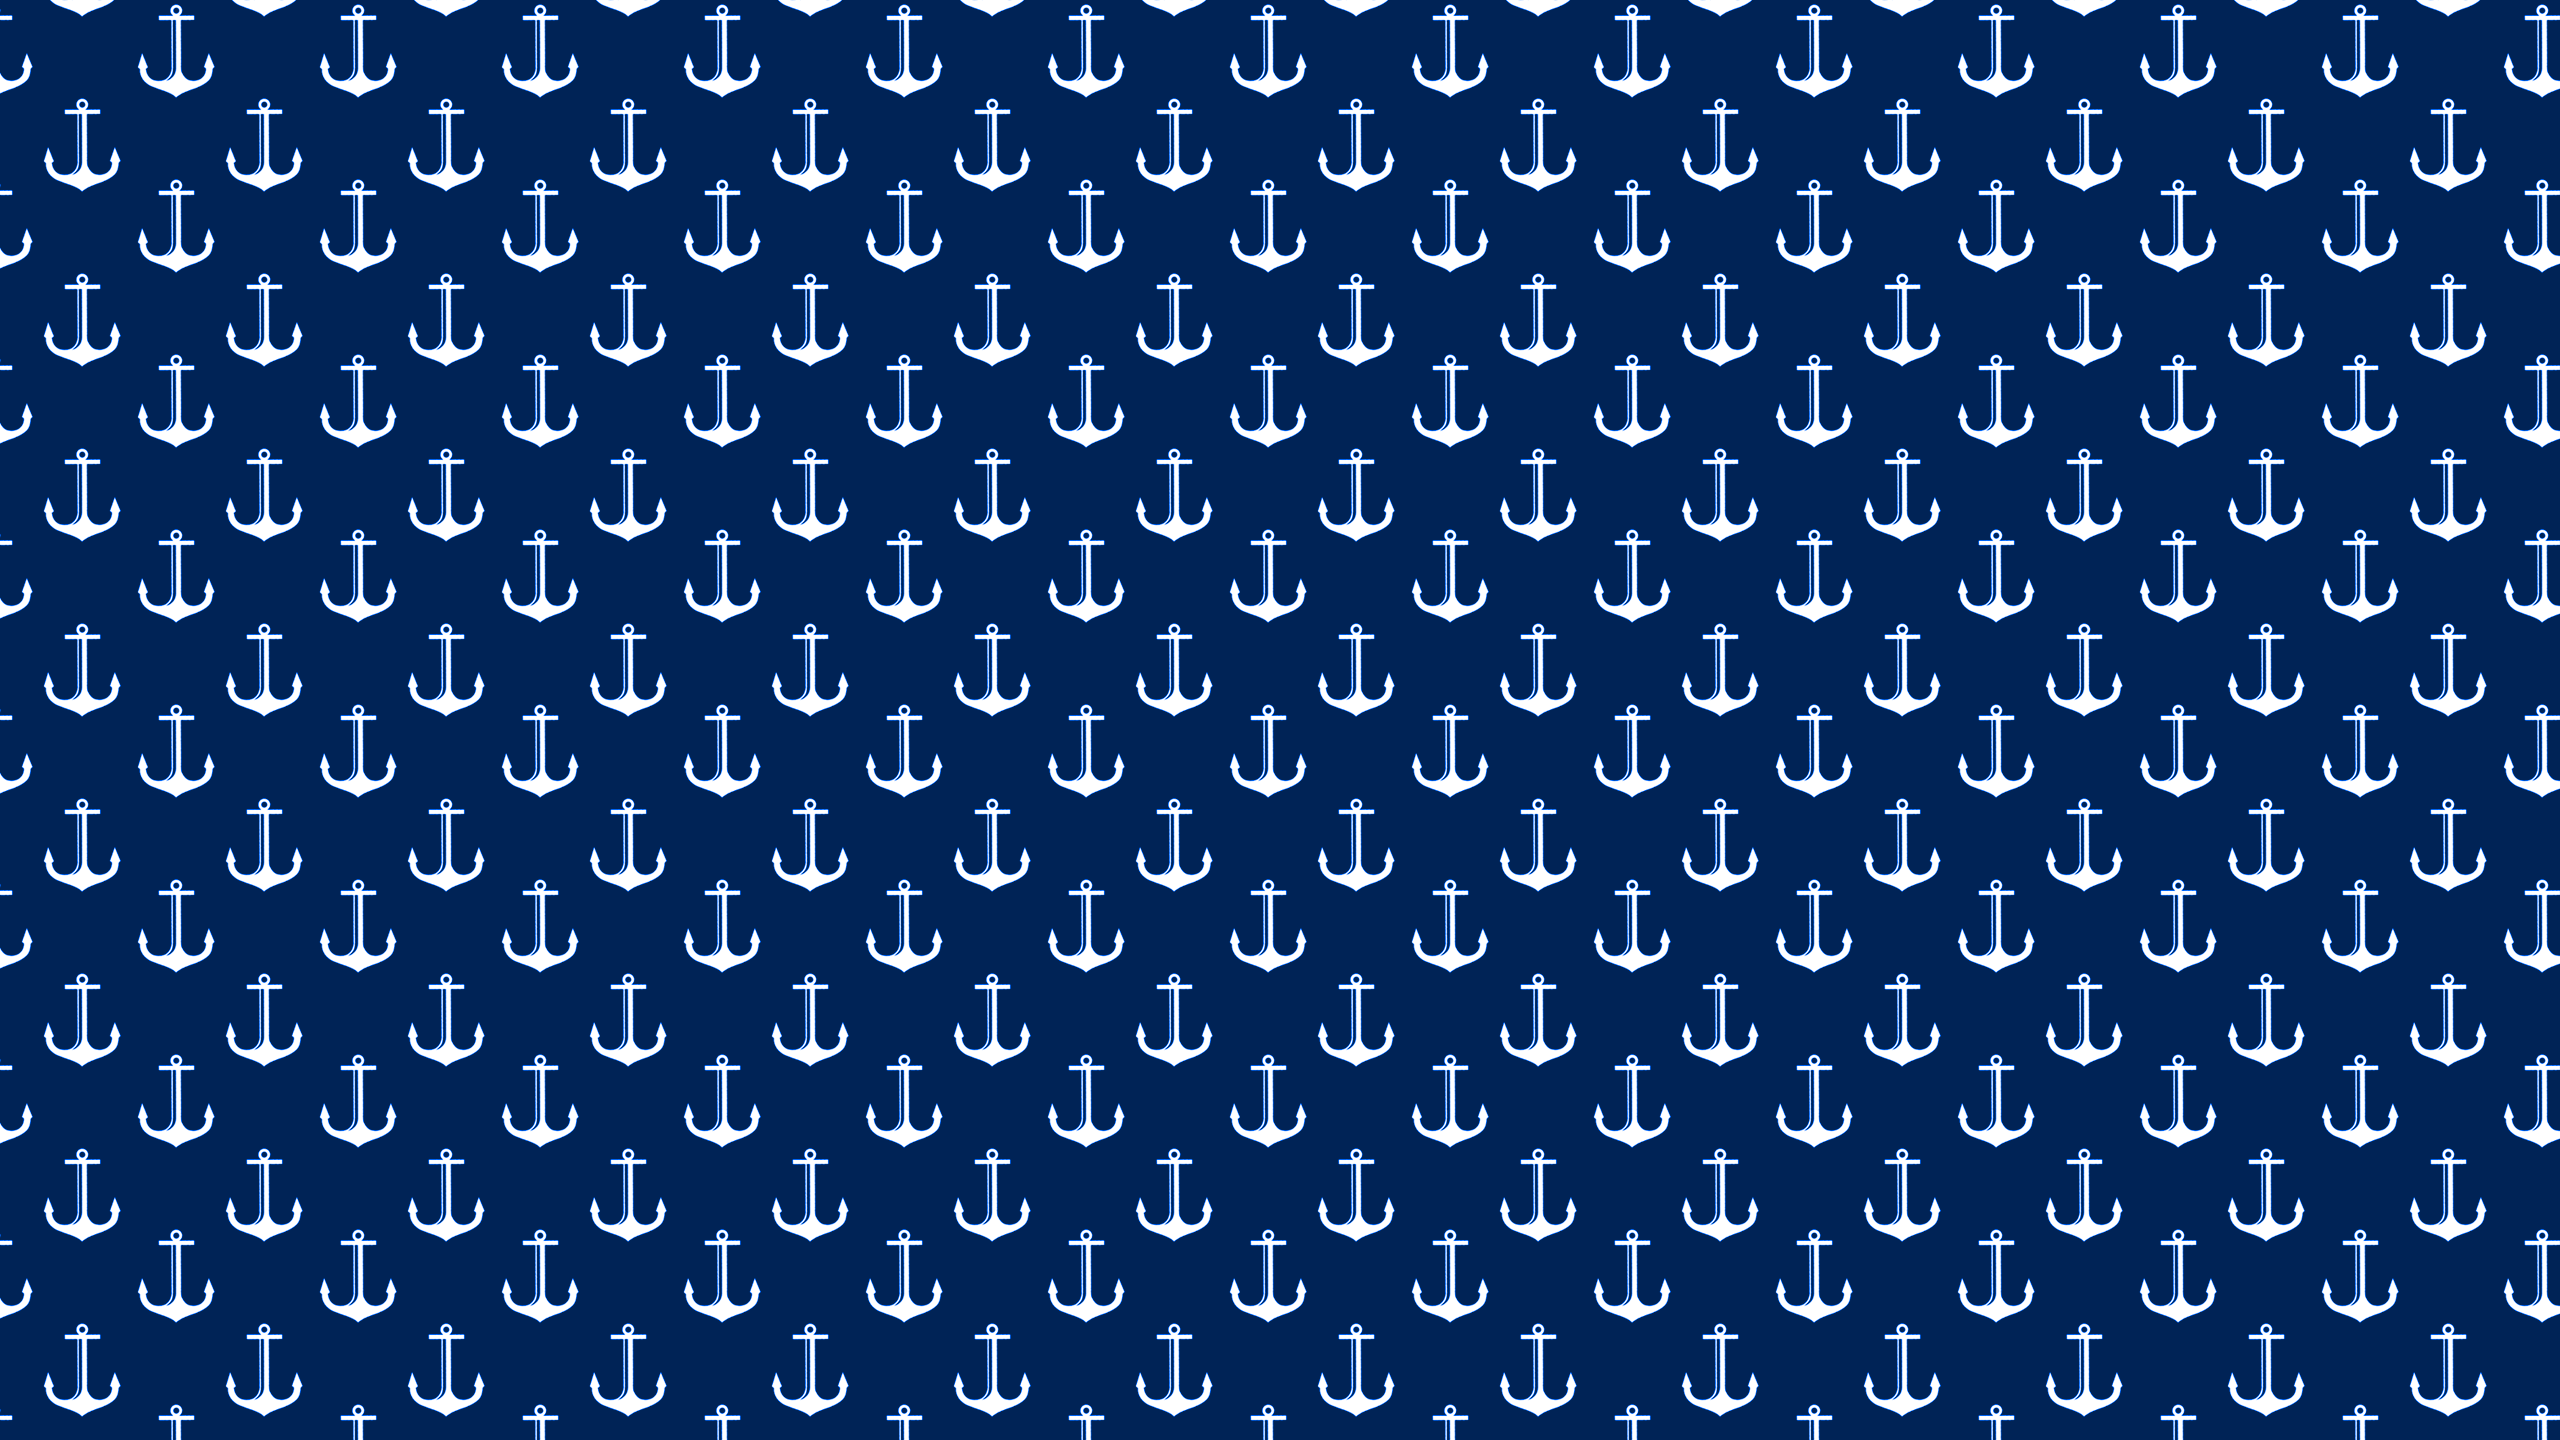 Girly Anchor Wallpaper And White Anchor Wallpaper 2560x1440